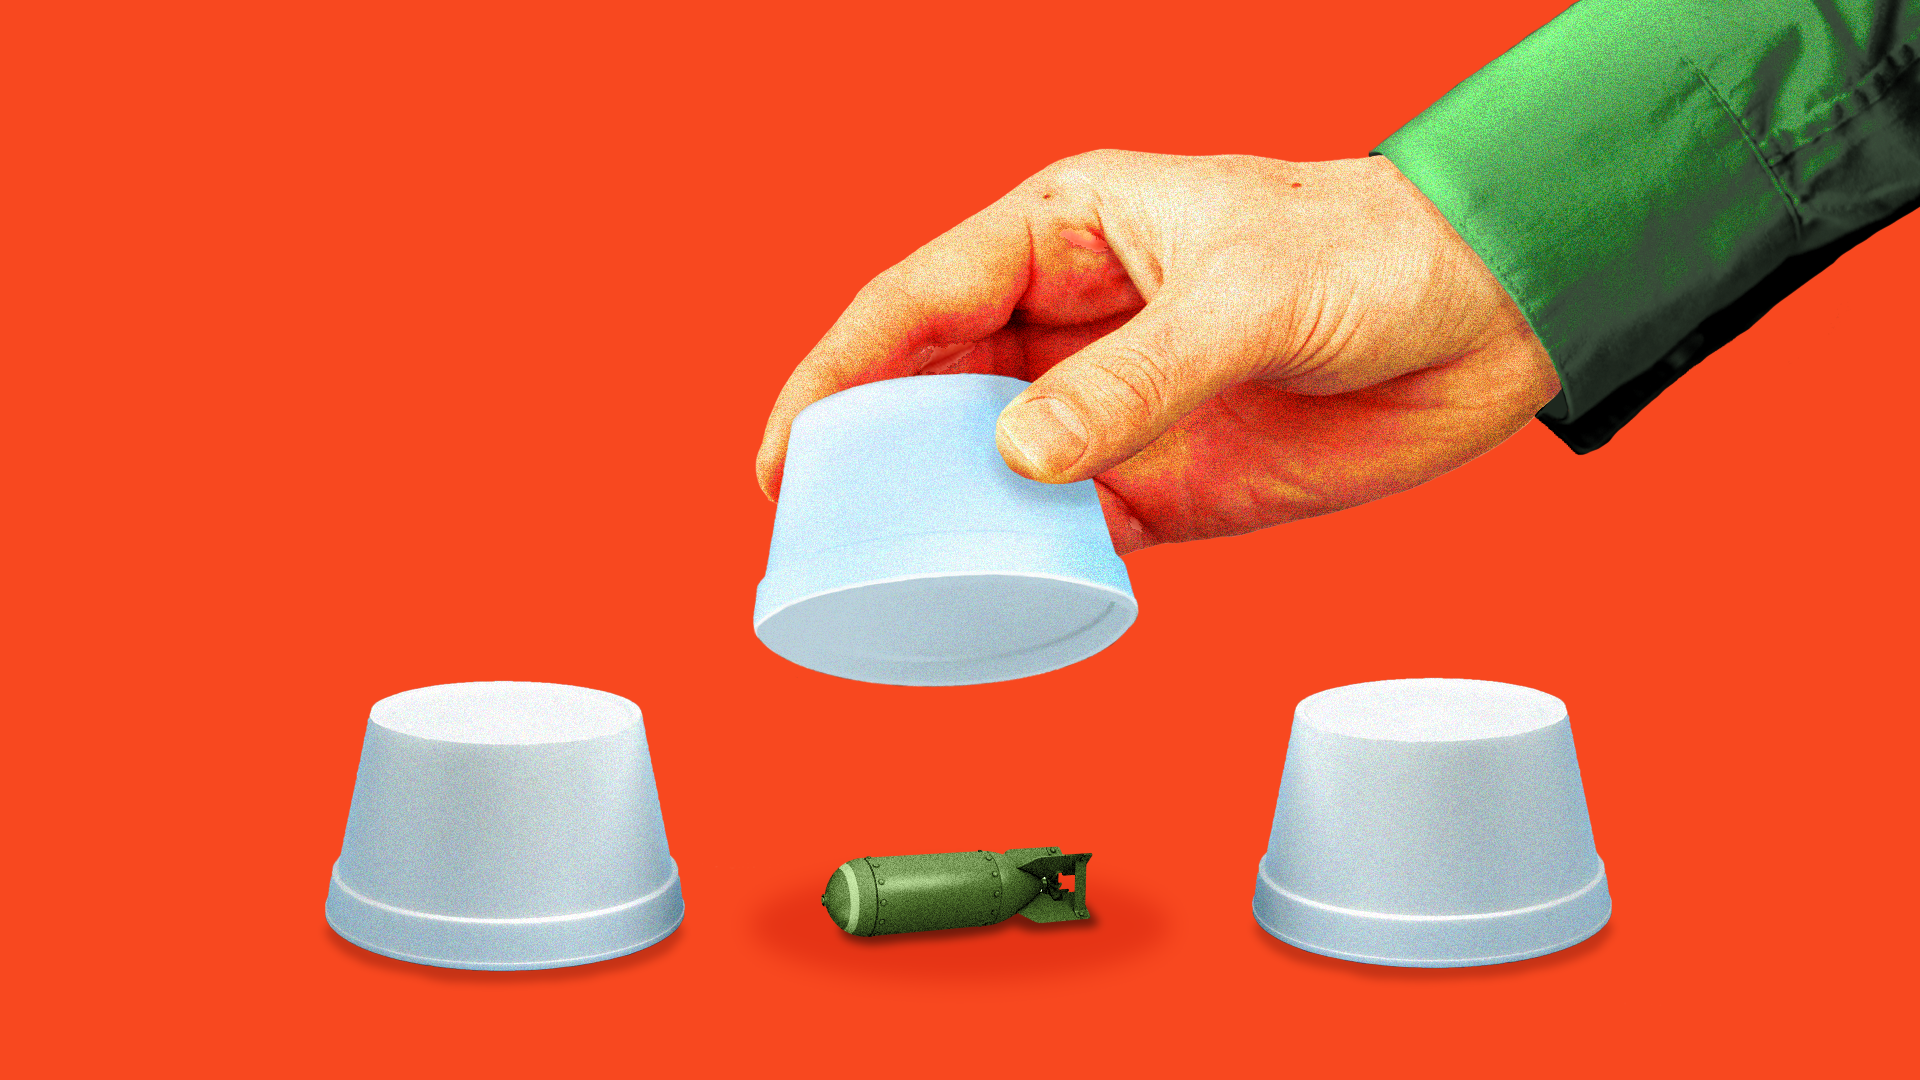 Illustration of three cups and under one is a nuclear warhead.